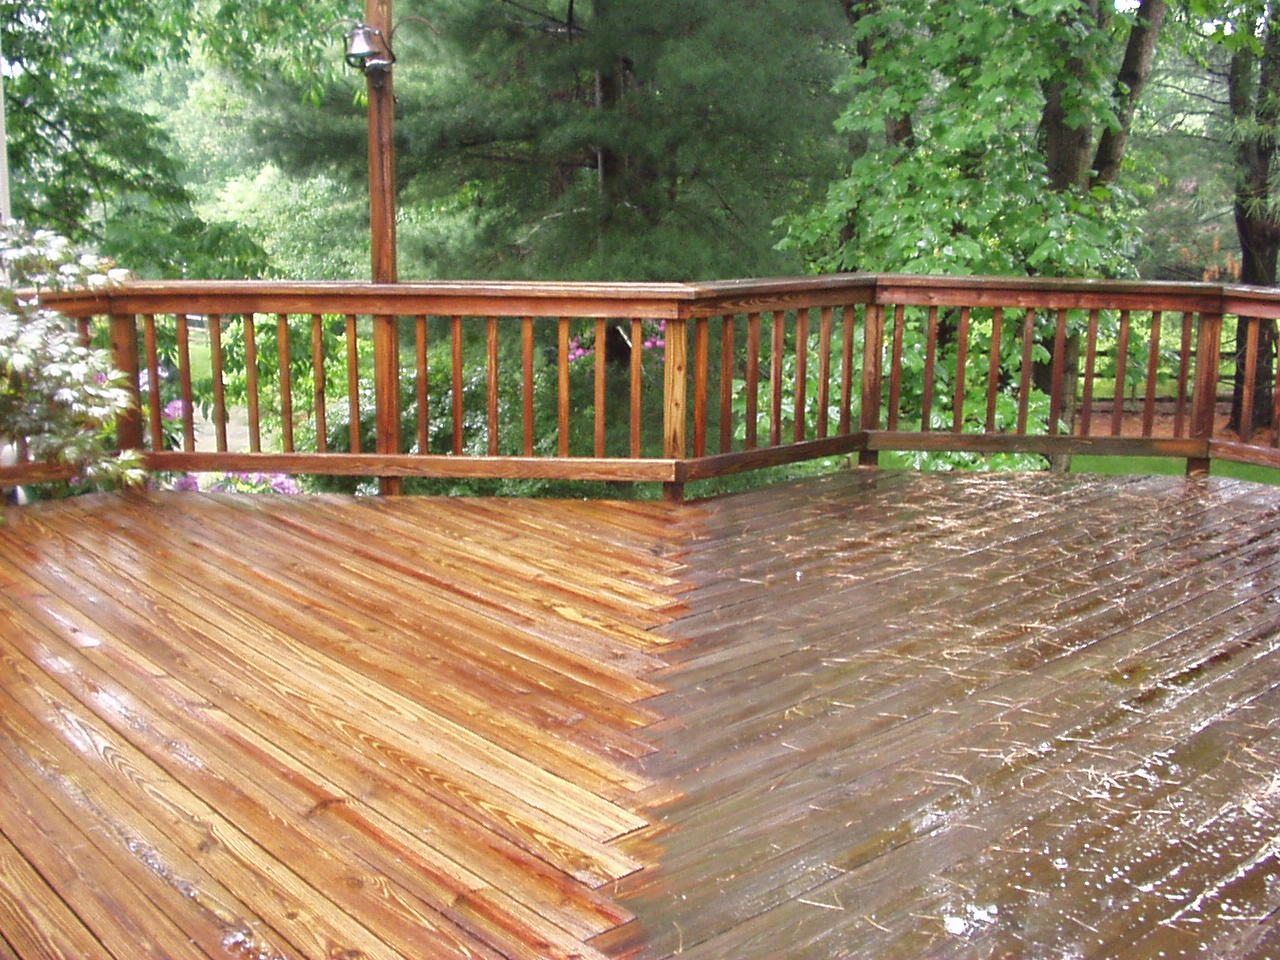 Speed Cleaning Use A Power Washer To Make Your Deck Look